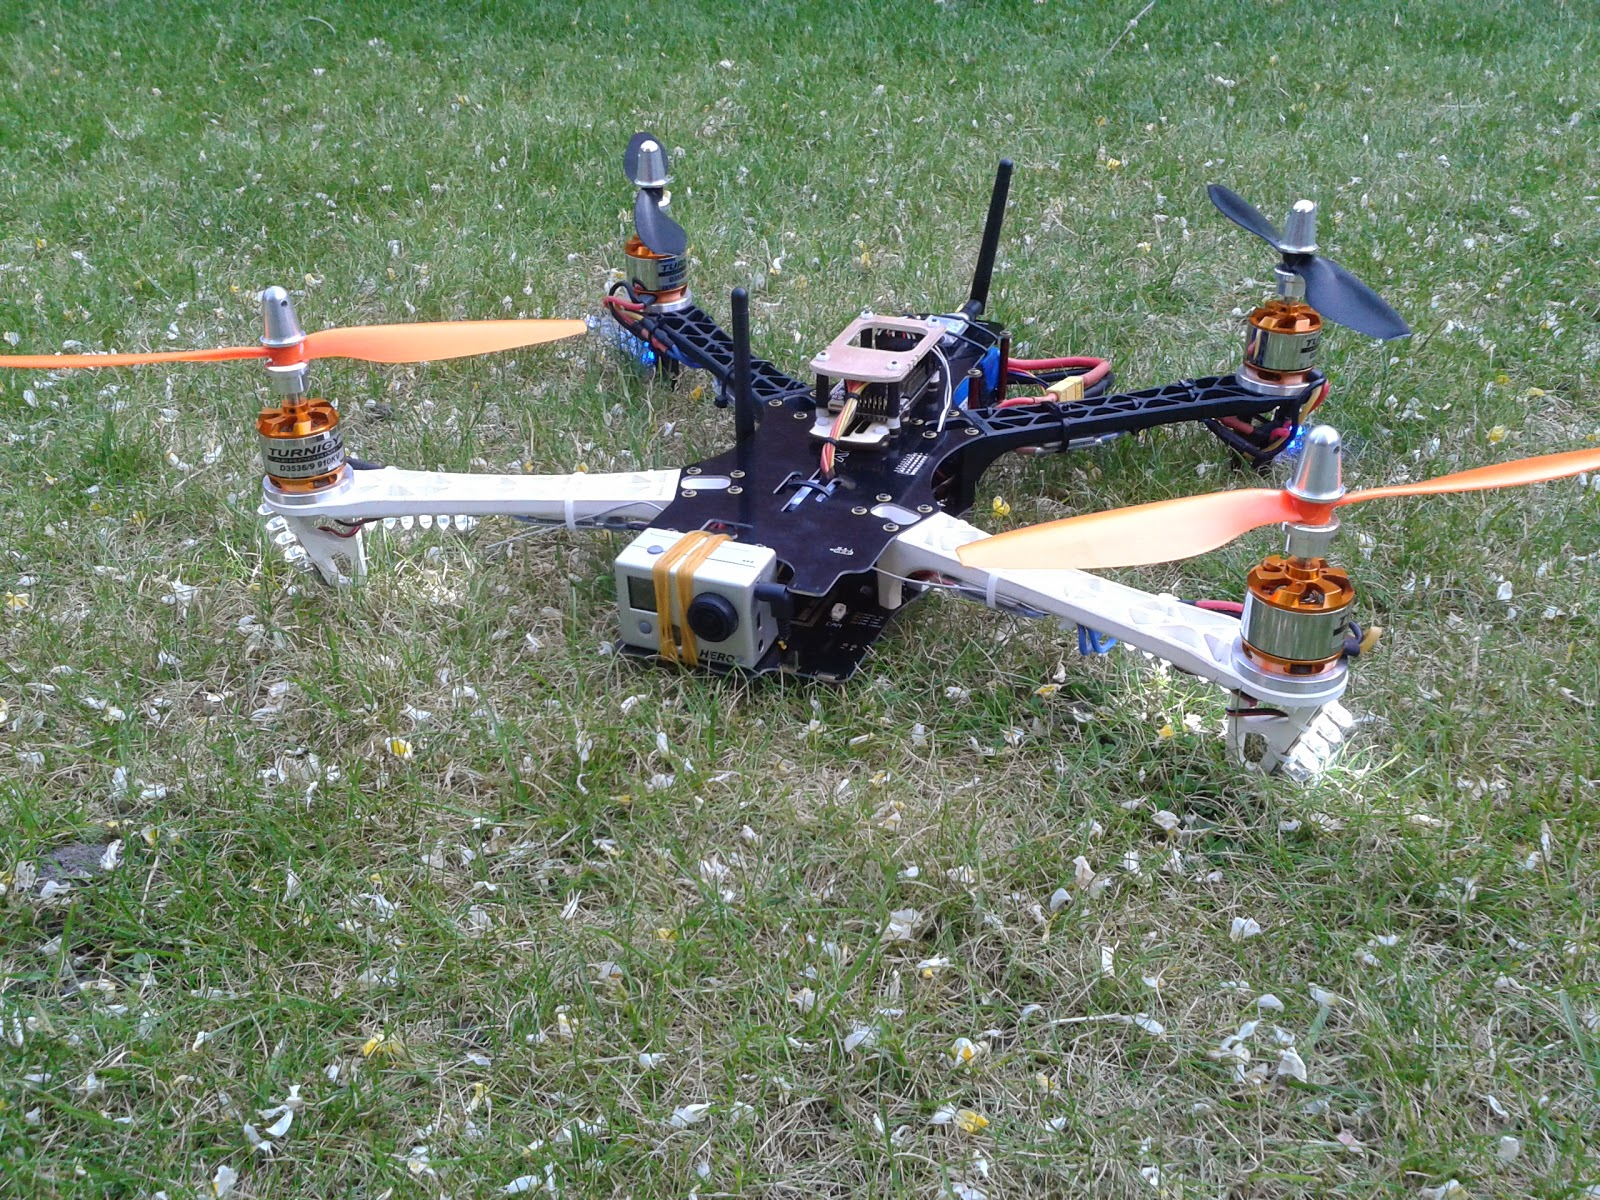 TBS Discovery Build + Android droidplanner - DIY Drones